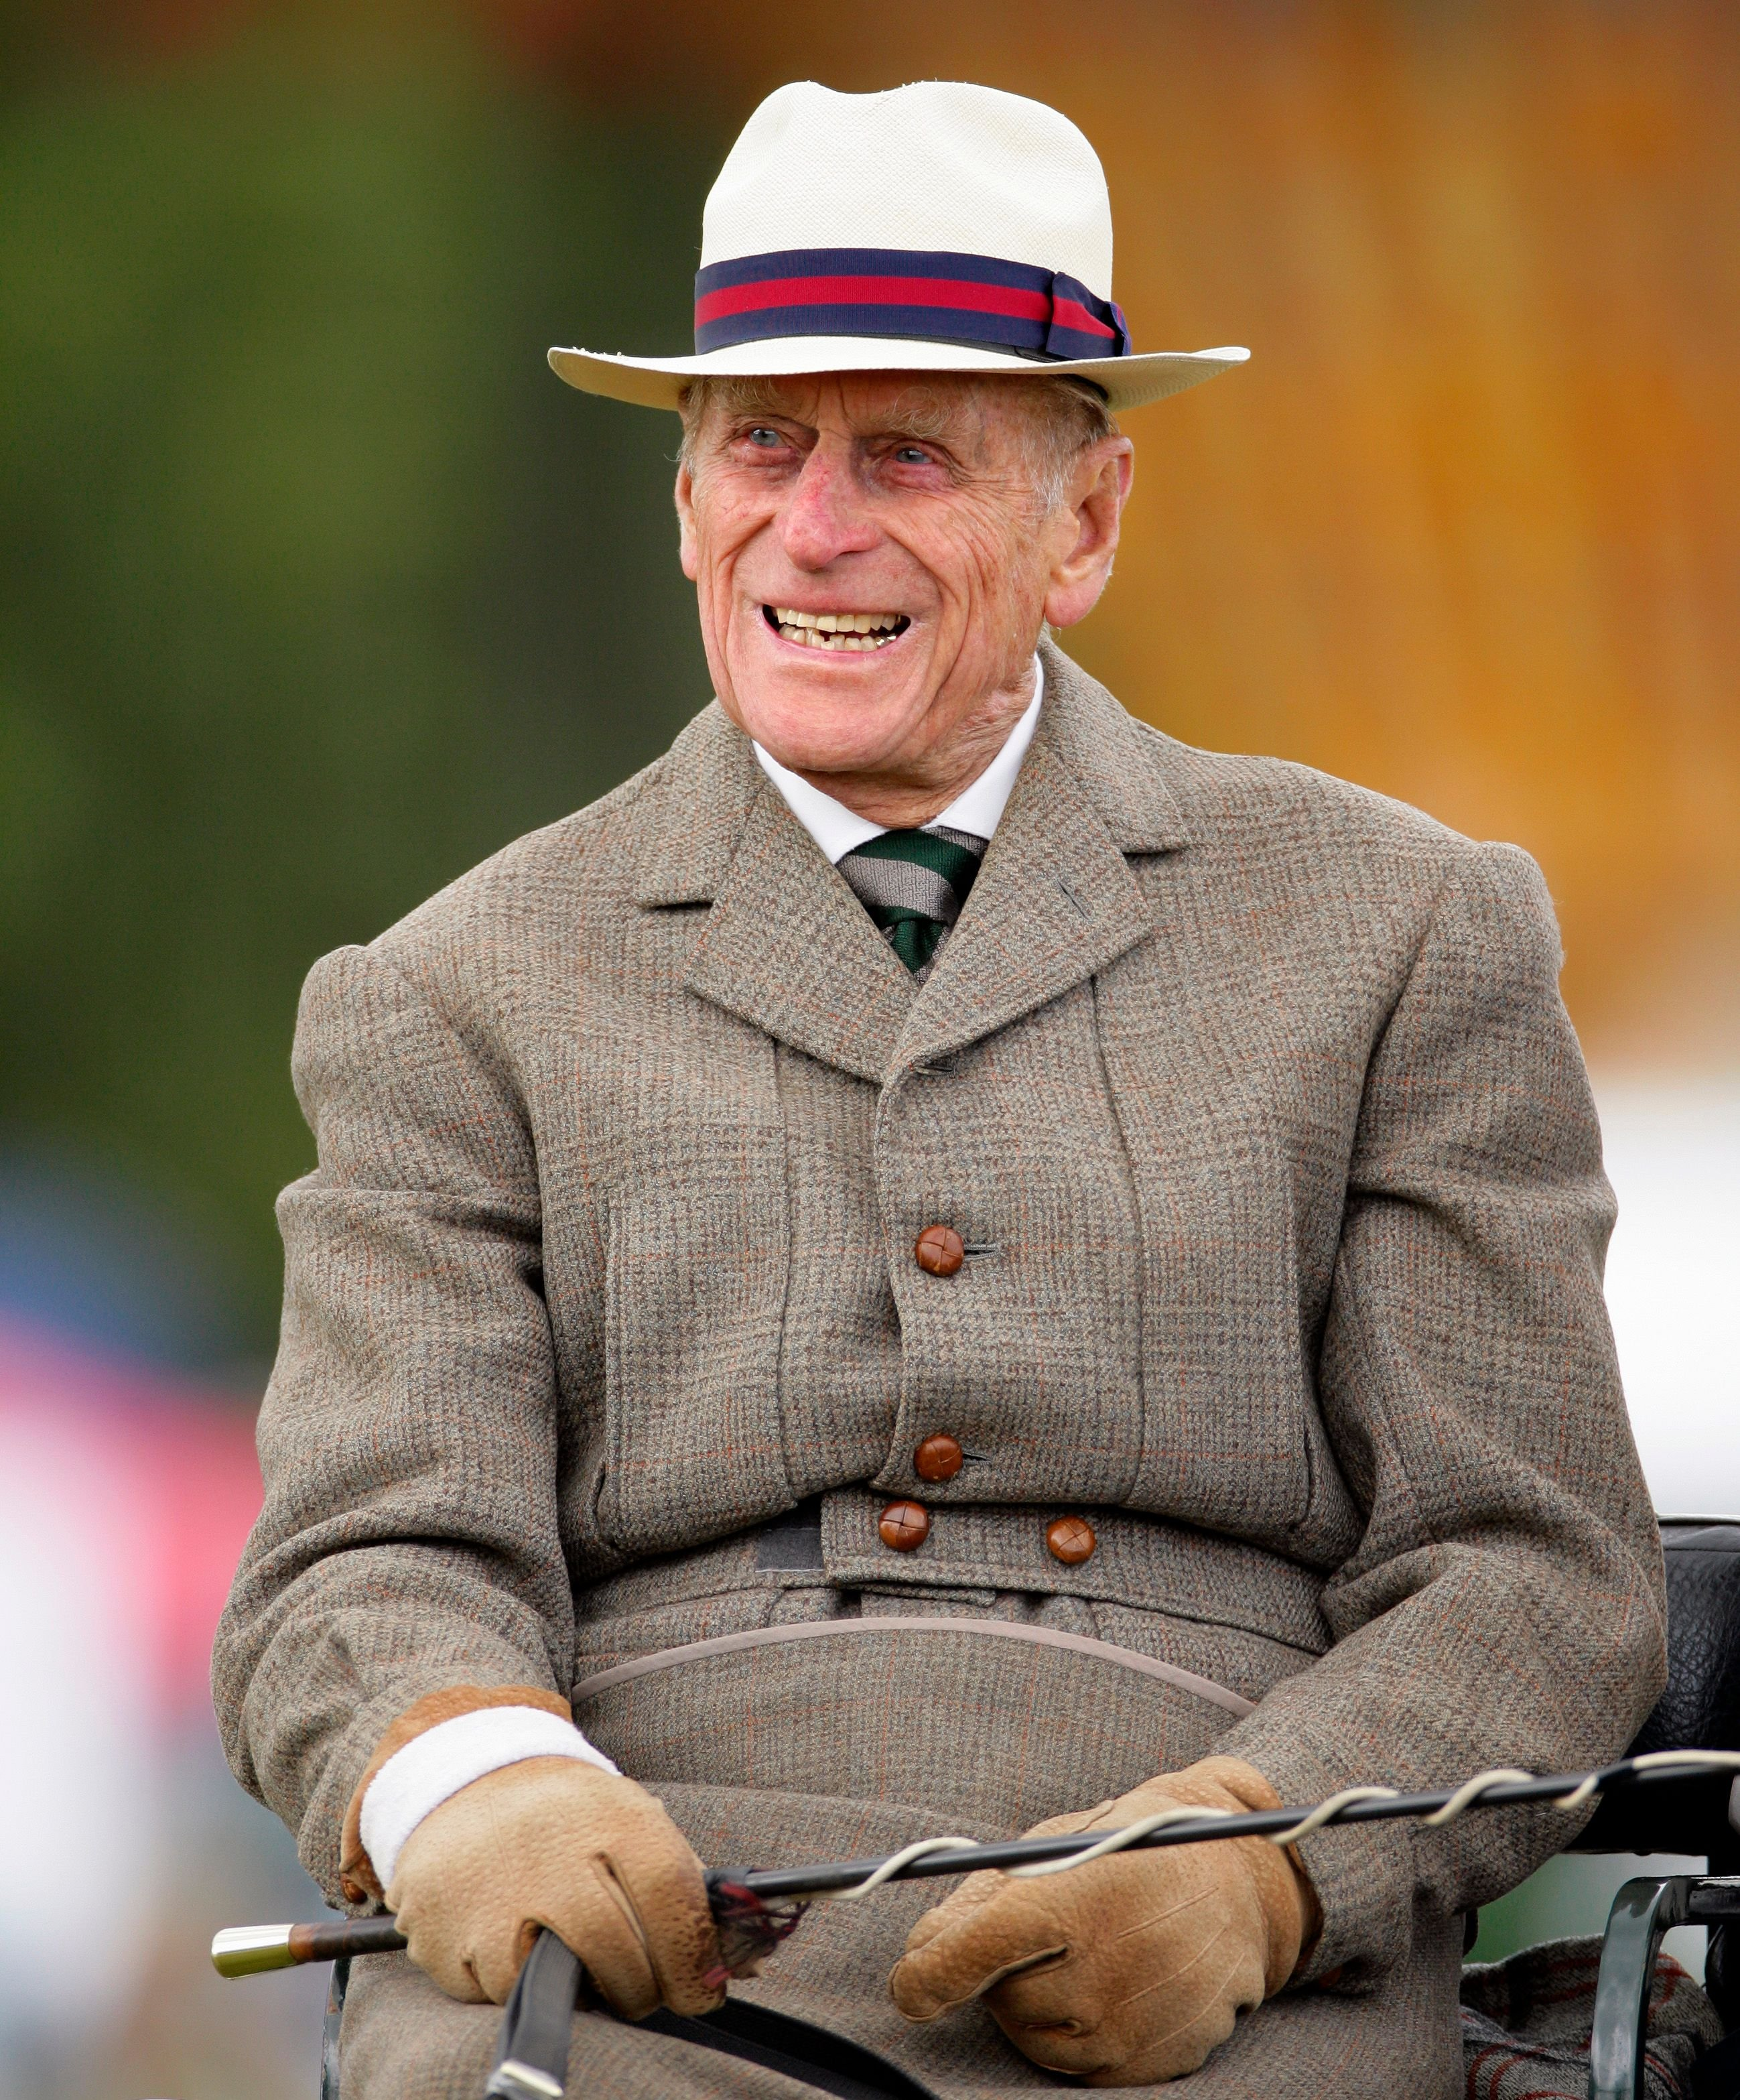 Prince Philip on May 15, 2011 in Windsor, England. | Photo: Getty Images